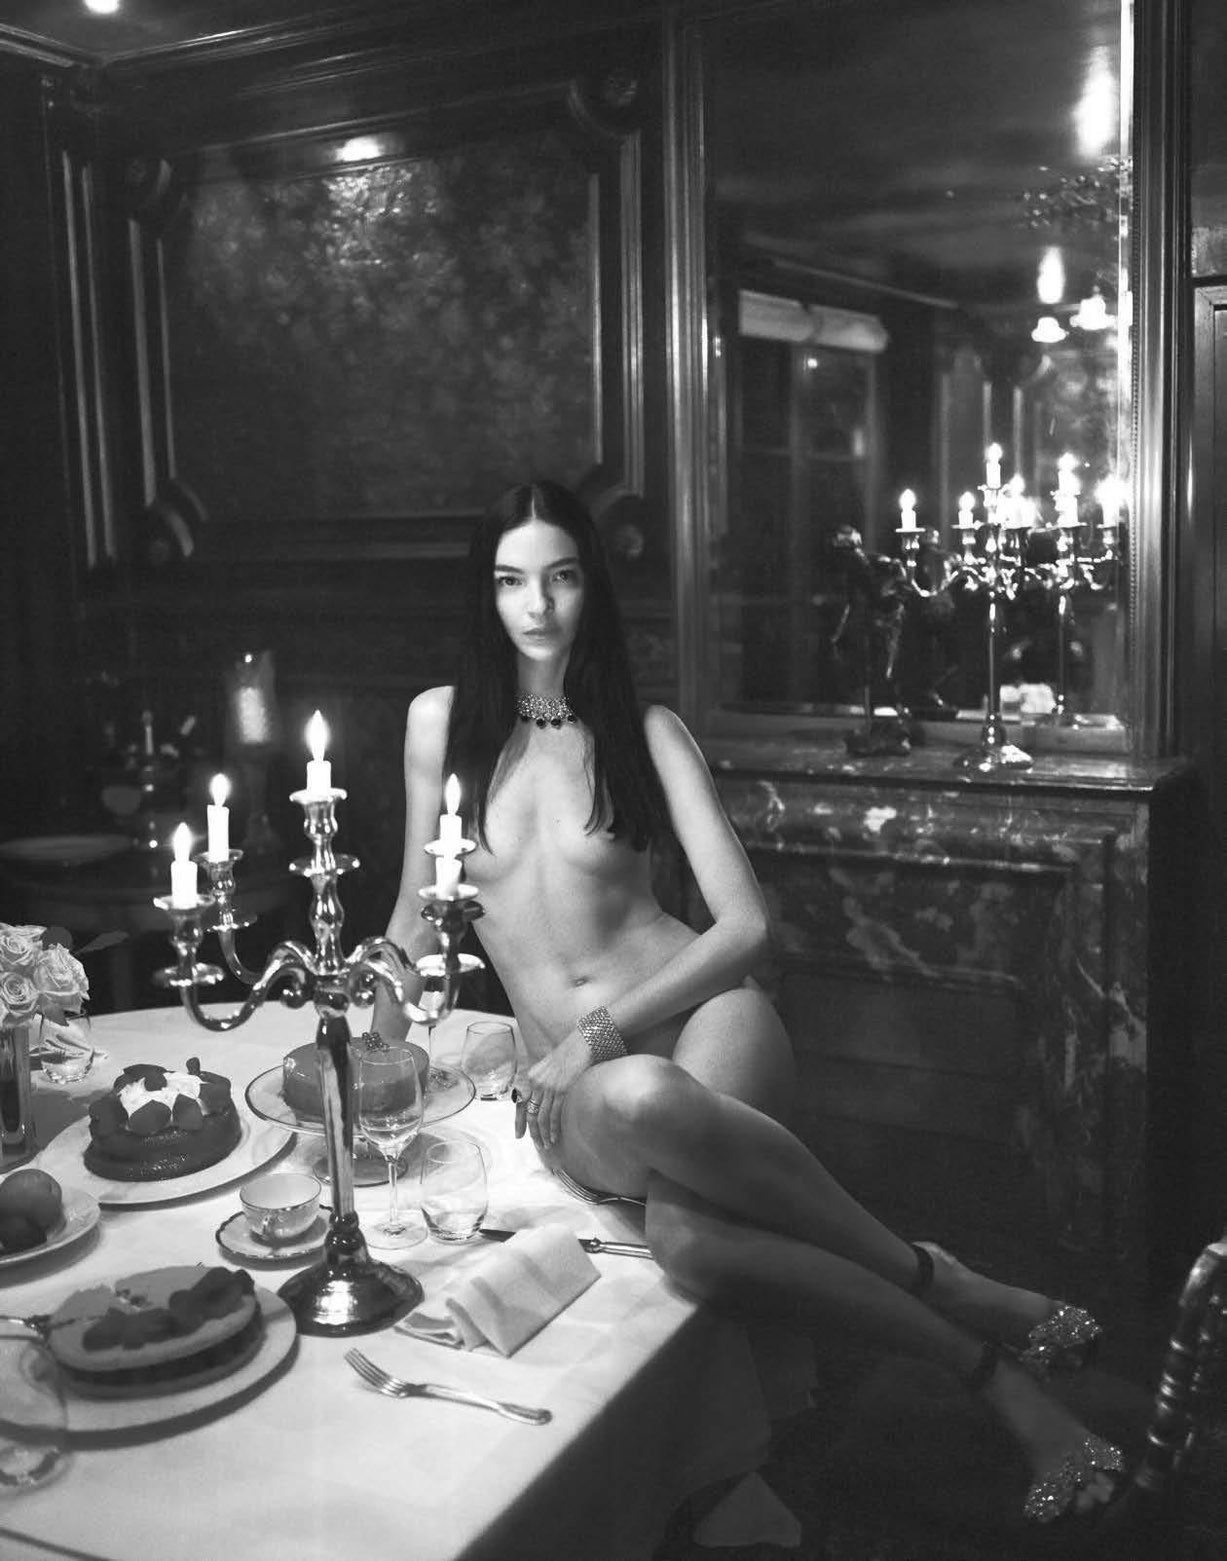 Vogue Italia December 2017 - The Celebration Issue / Bella Hadid, Sara Sampaio, Irina Shayk, Anja Rubik, Natasha Poly, Anna Ewers, Joan Smalls, Lily Aldridge, Mariacarla Boscono and other by Mert Alas and Marcus Piggott